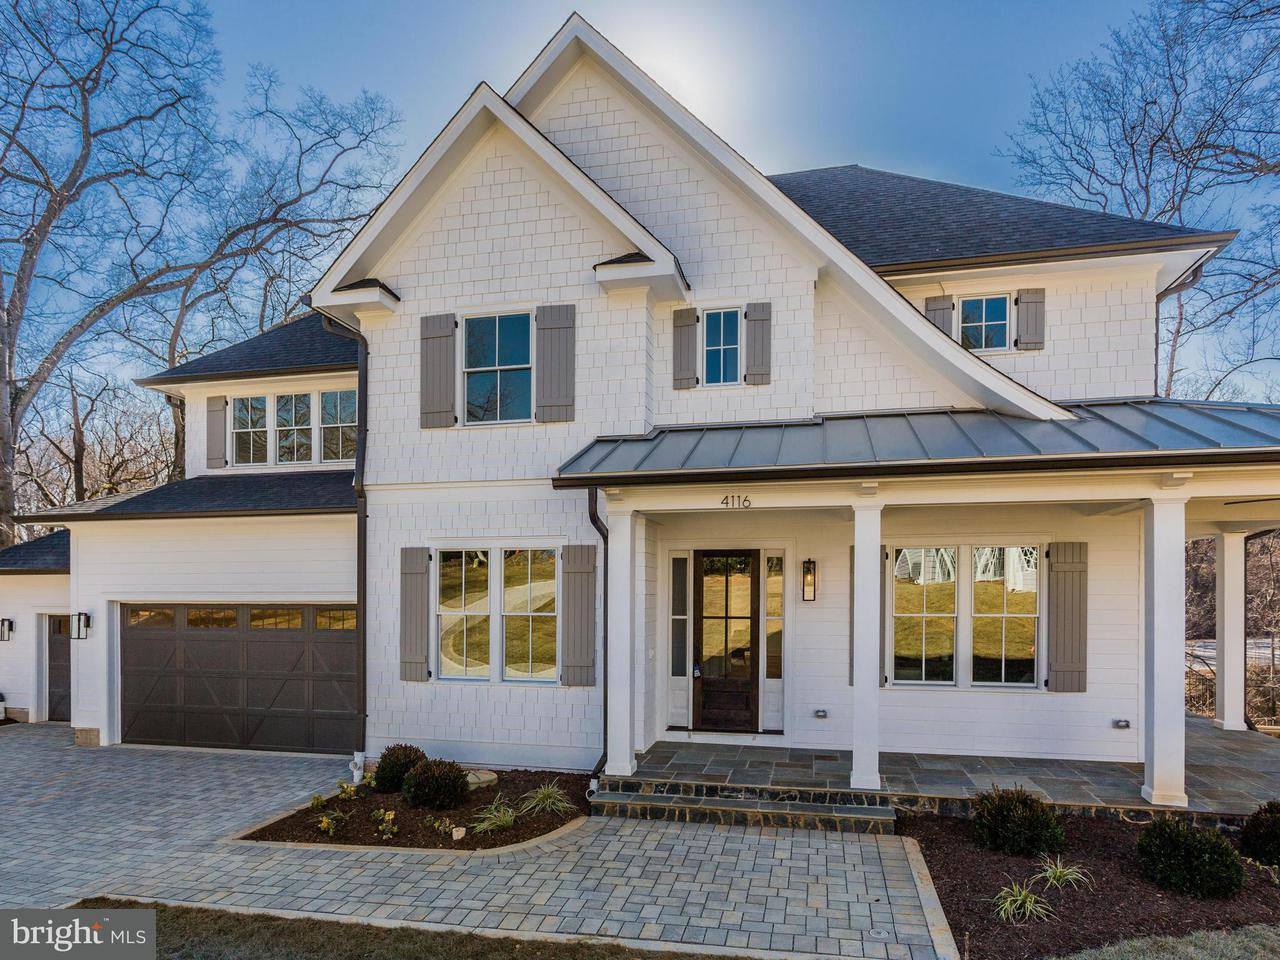 Single Family Home for Sale at 4116 40th St N 4116 40th St N Arlington, Virginia 22207 United States